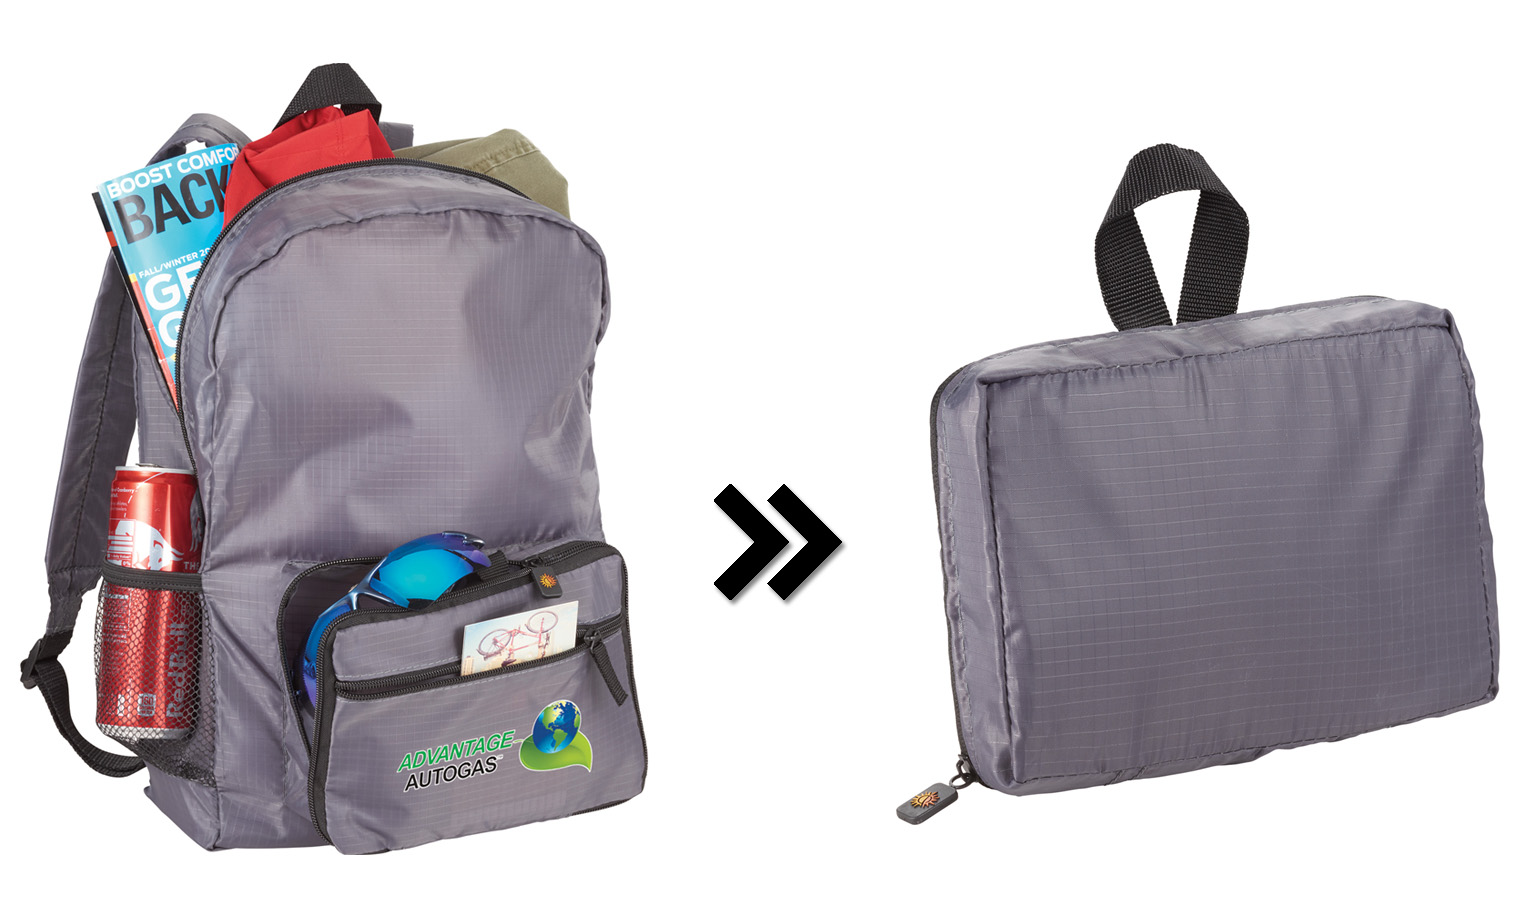 Pack Like A Pro With This Fold Up Backpack Captiv8